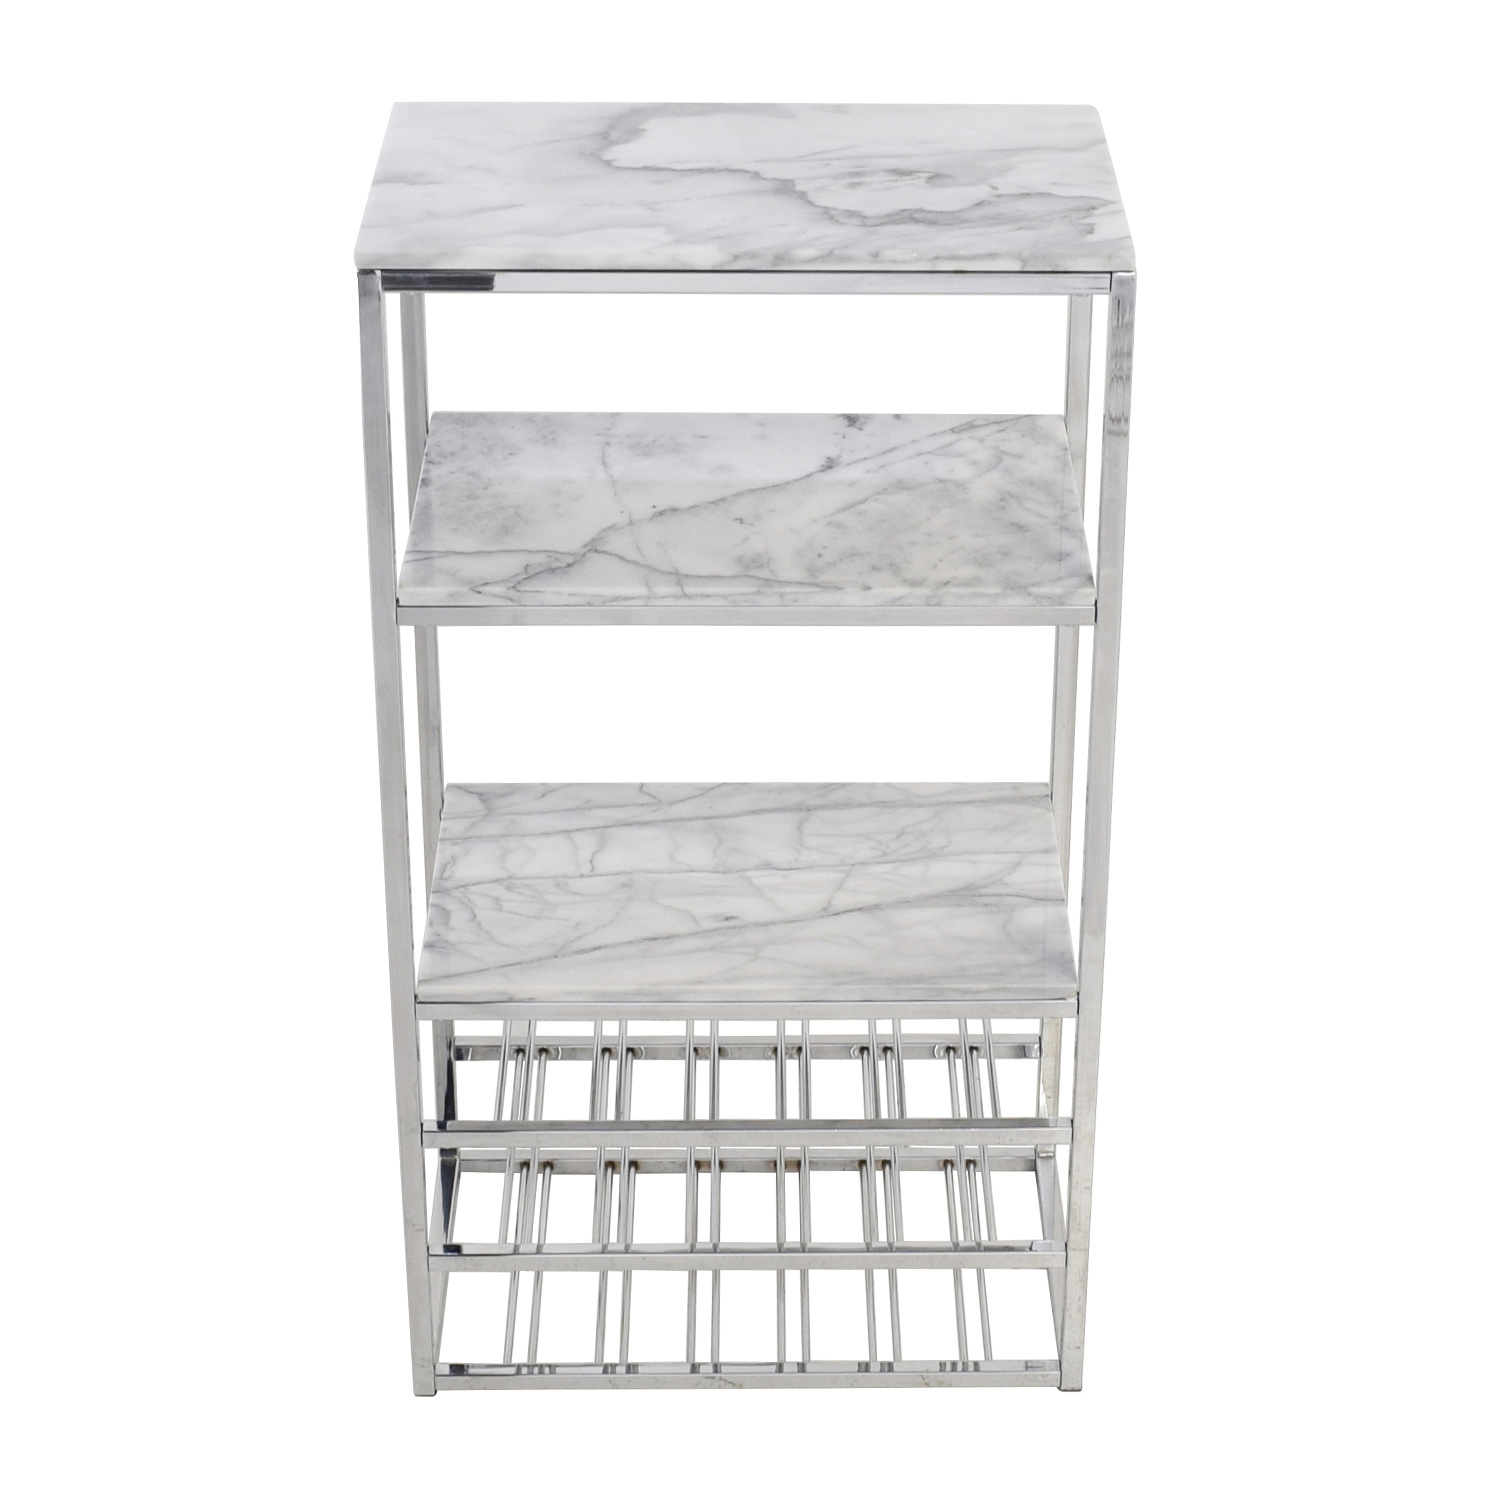 Crate and Barrel Crate & Barrel Marble and Silver Chrome Wine Rack second hand